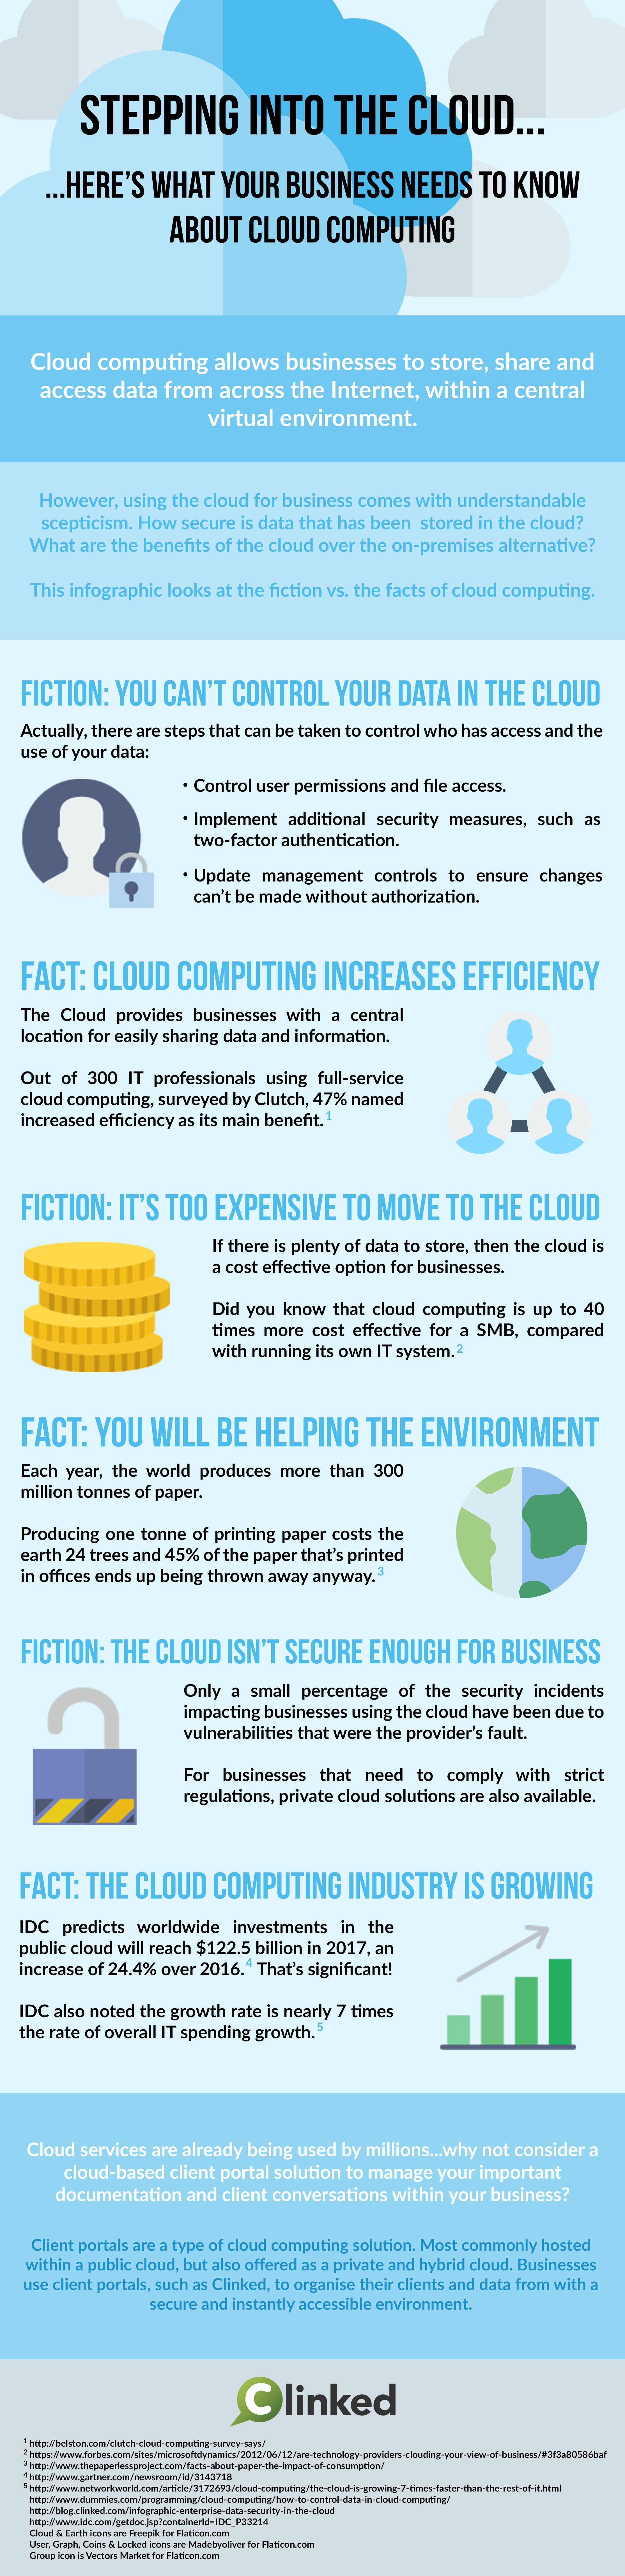 Cloud computing for business fact vs fiction infographic